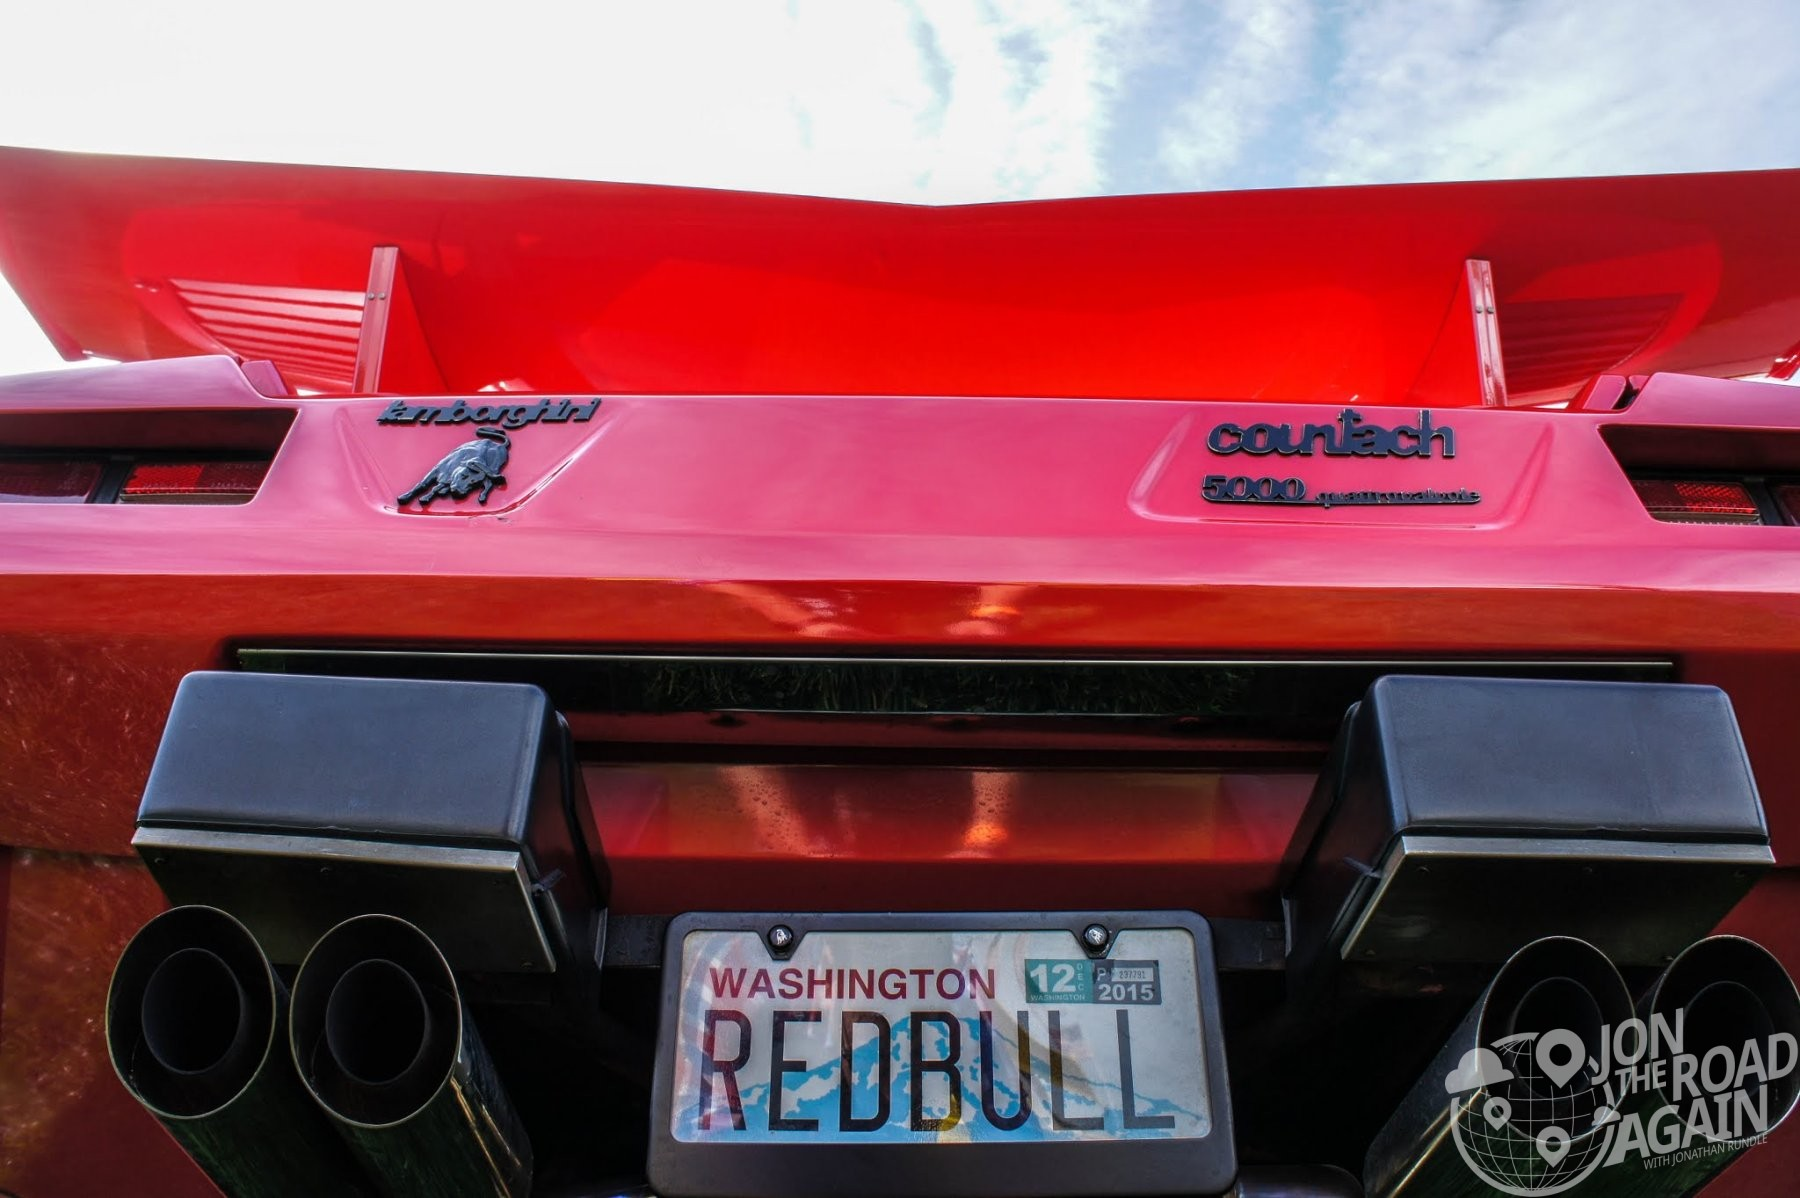 Red Bull Countach